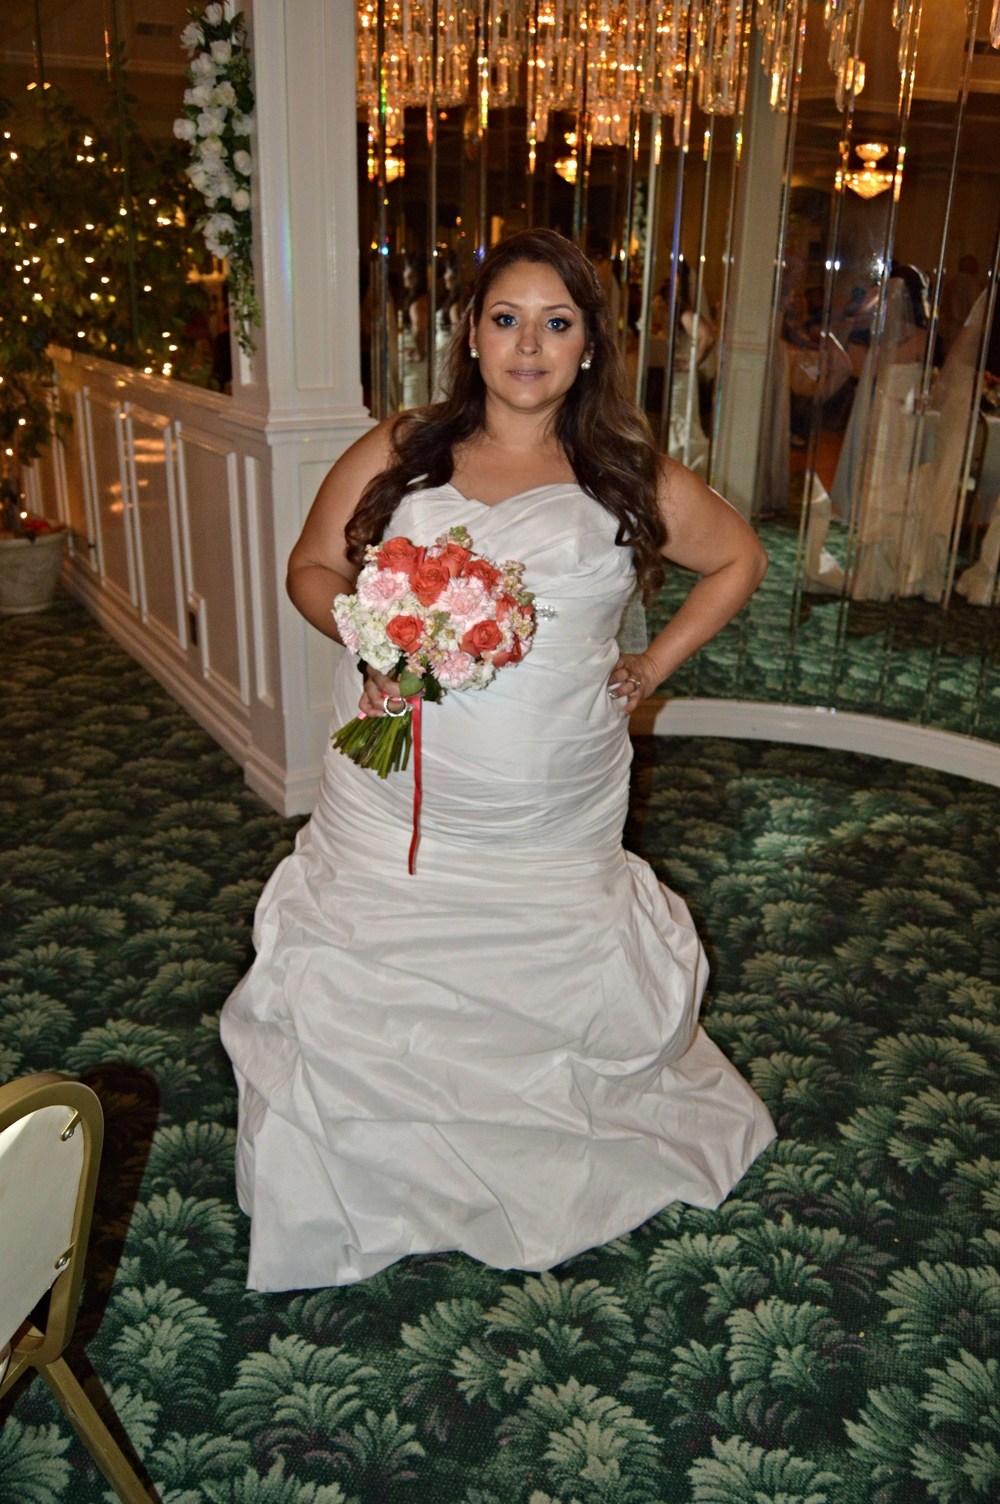 The bride, Melissa, showing off her beautiful gown and her very special package, a baby bump. She is a trooper! She lasted all day on her wedding day despite being full term and due the following weekend.